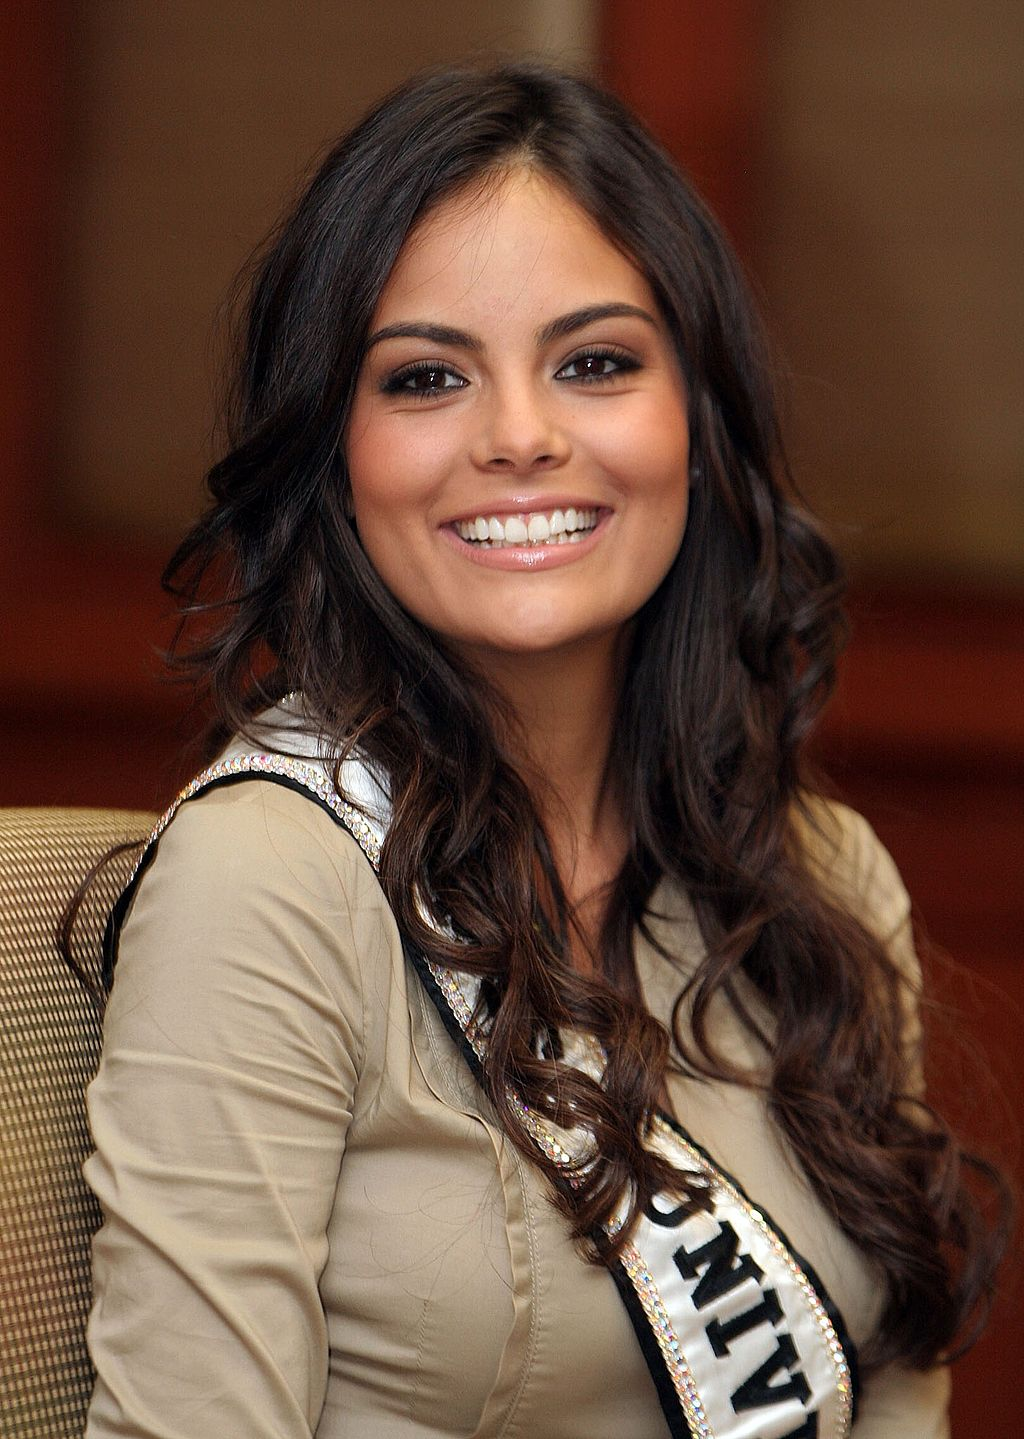 Ximena Navarette, Miss Universe 2010. She is from Guadalajara, Mexico. Source:  Flickr / Abhisit Vejjajiva, available  here .